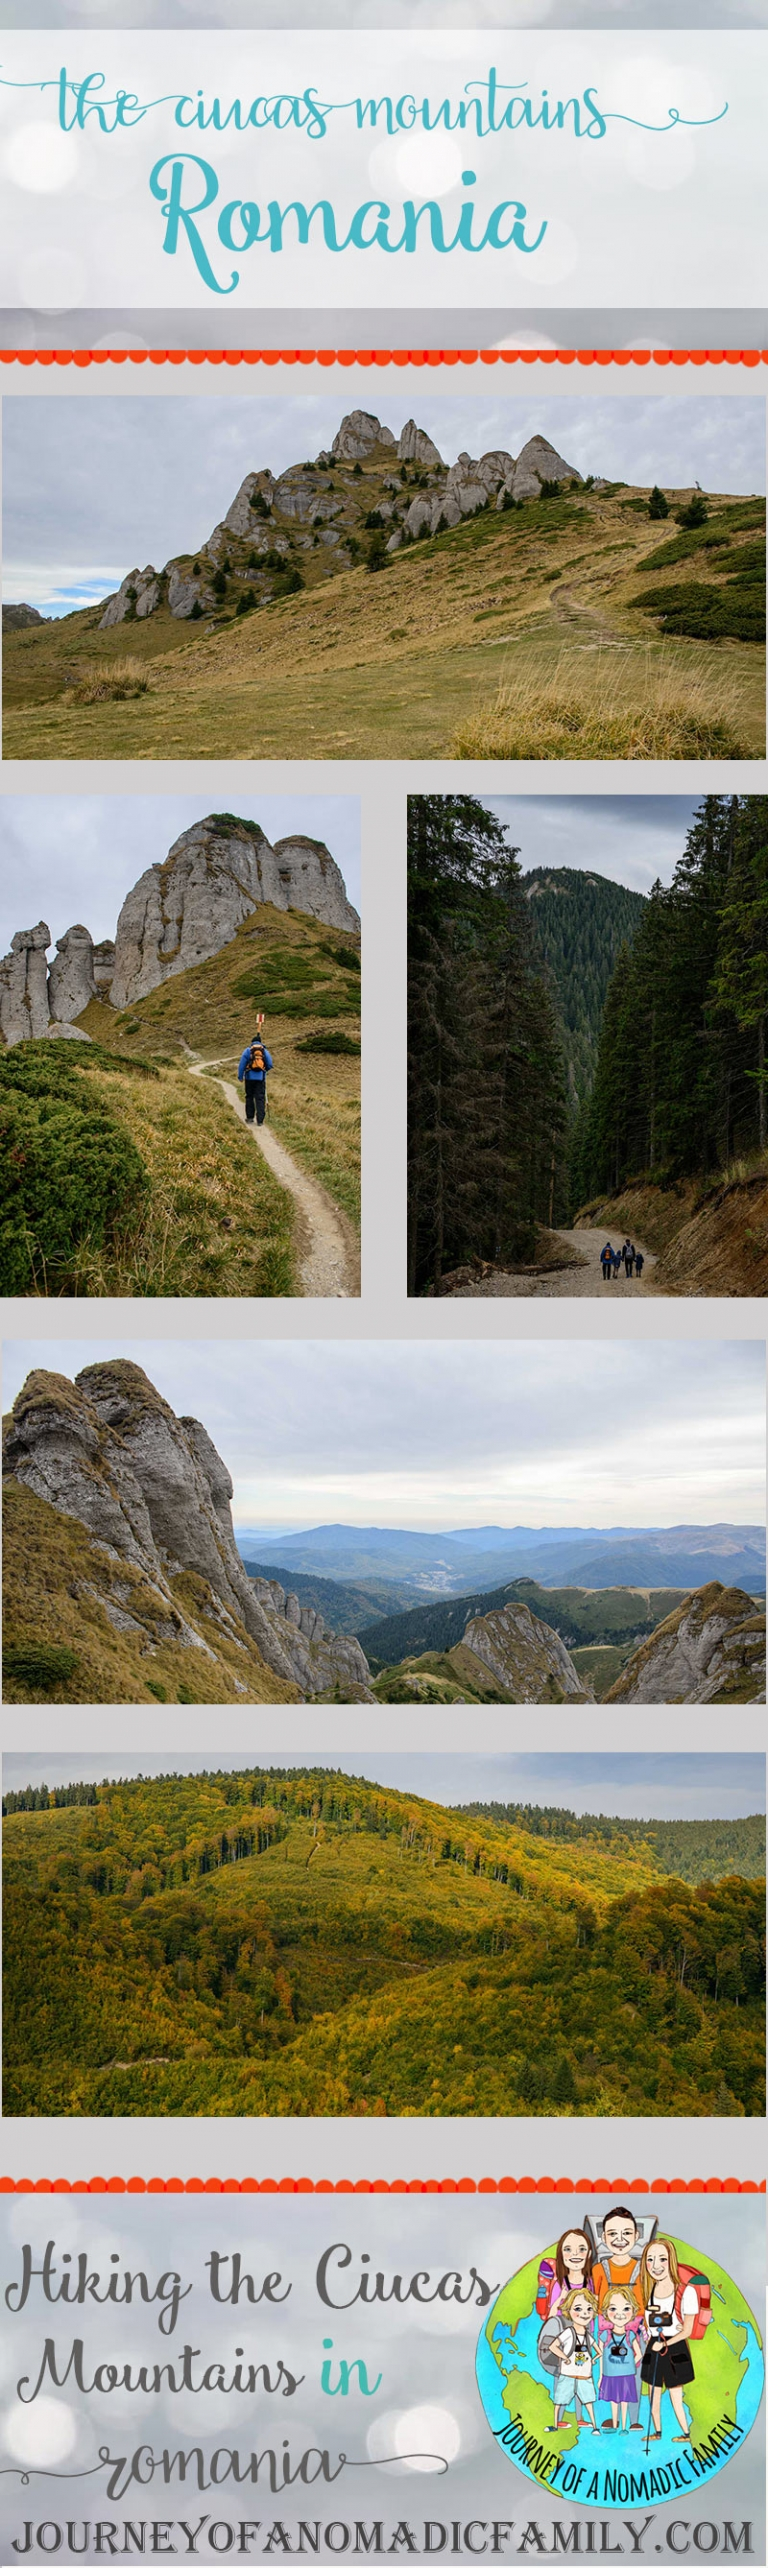 How to hike the Ciucas mountains in Romania (with kids)